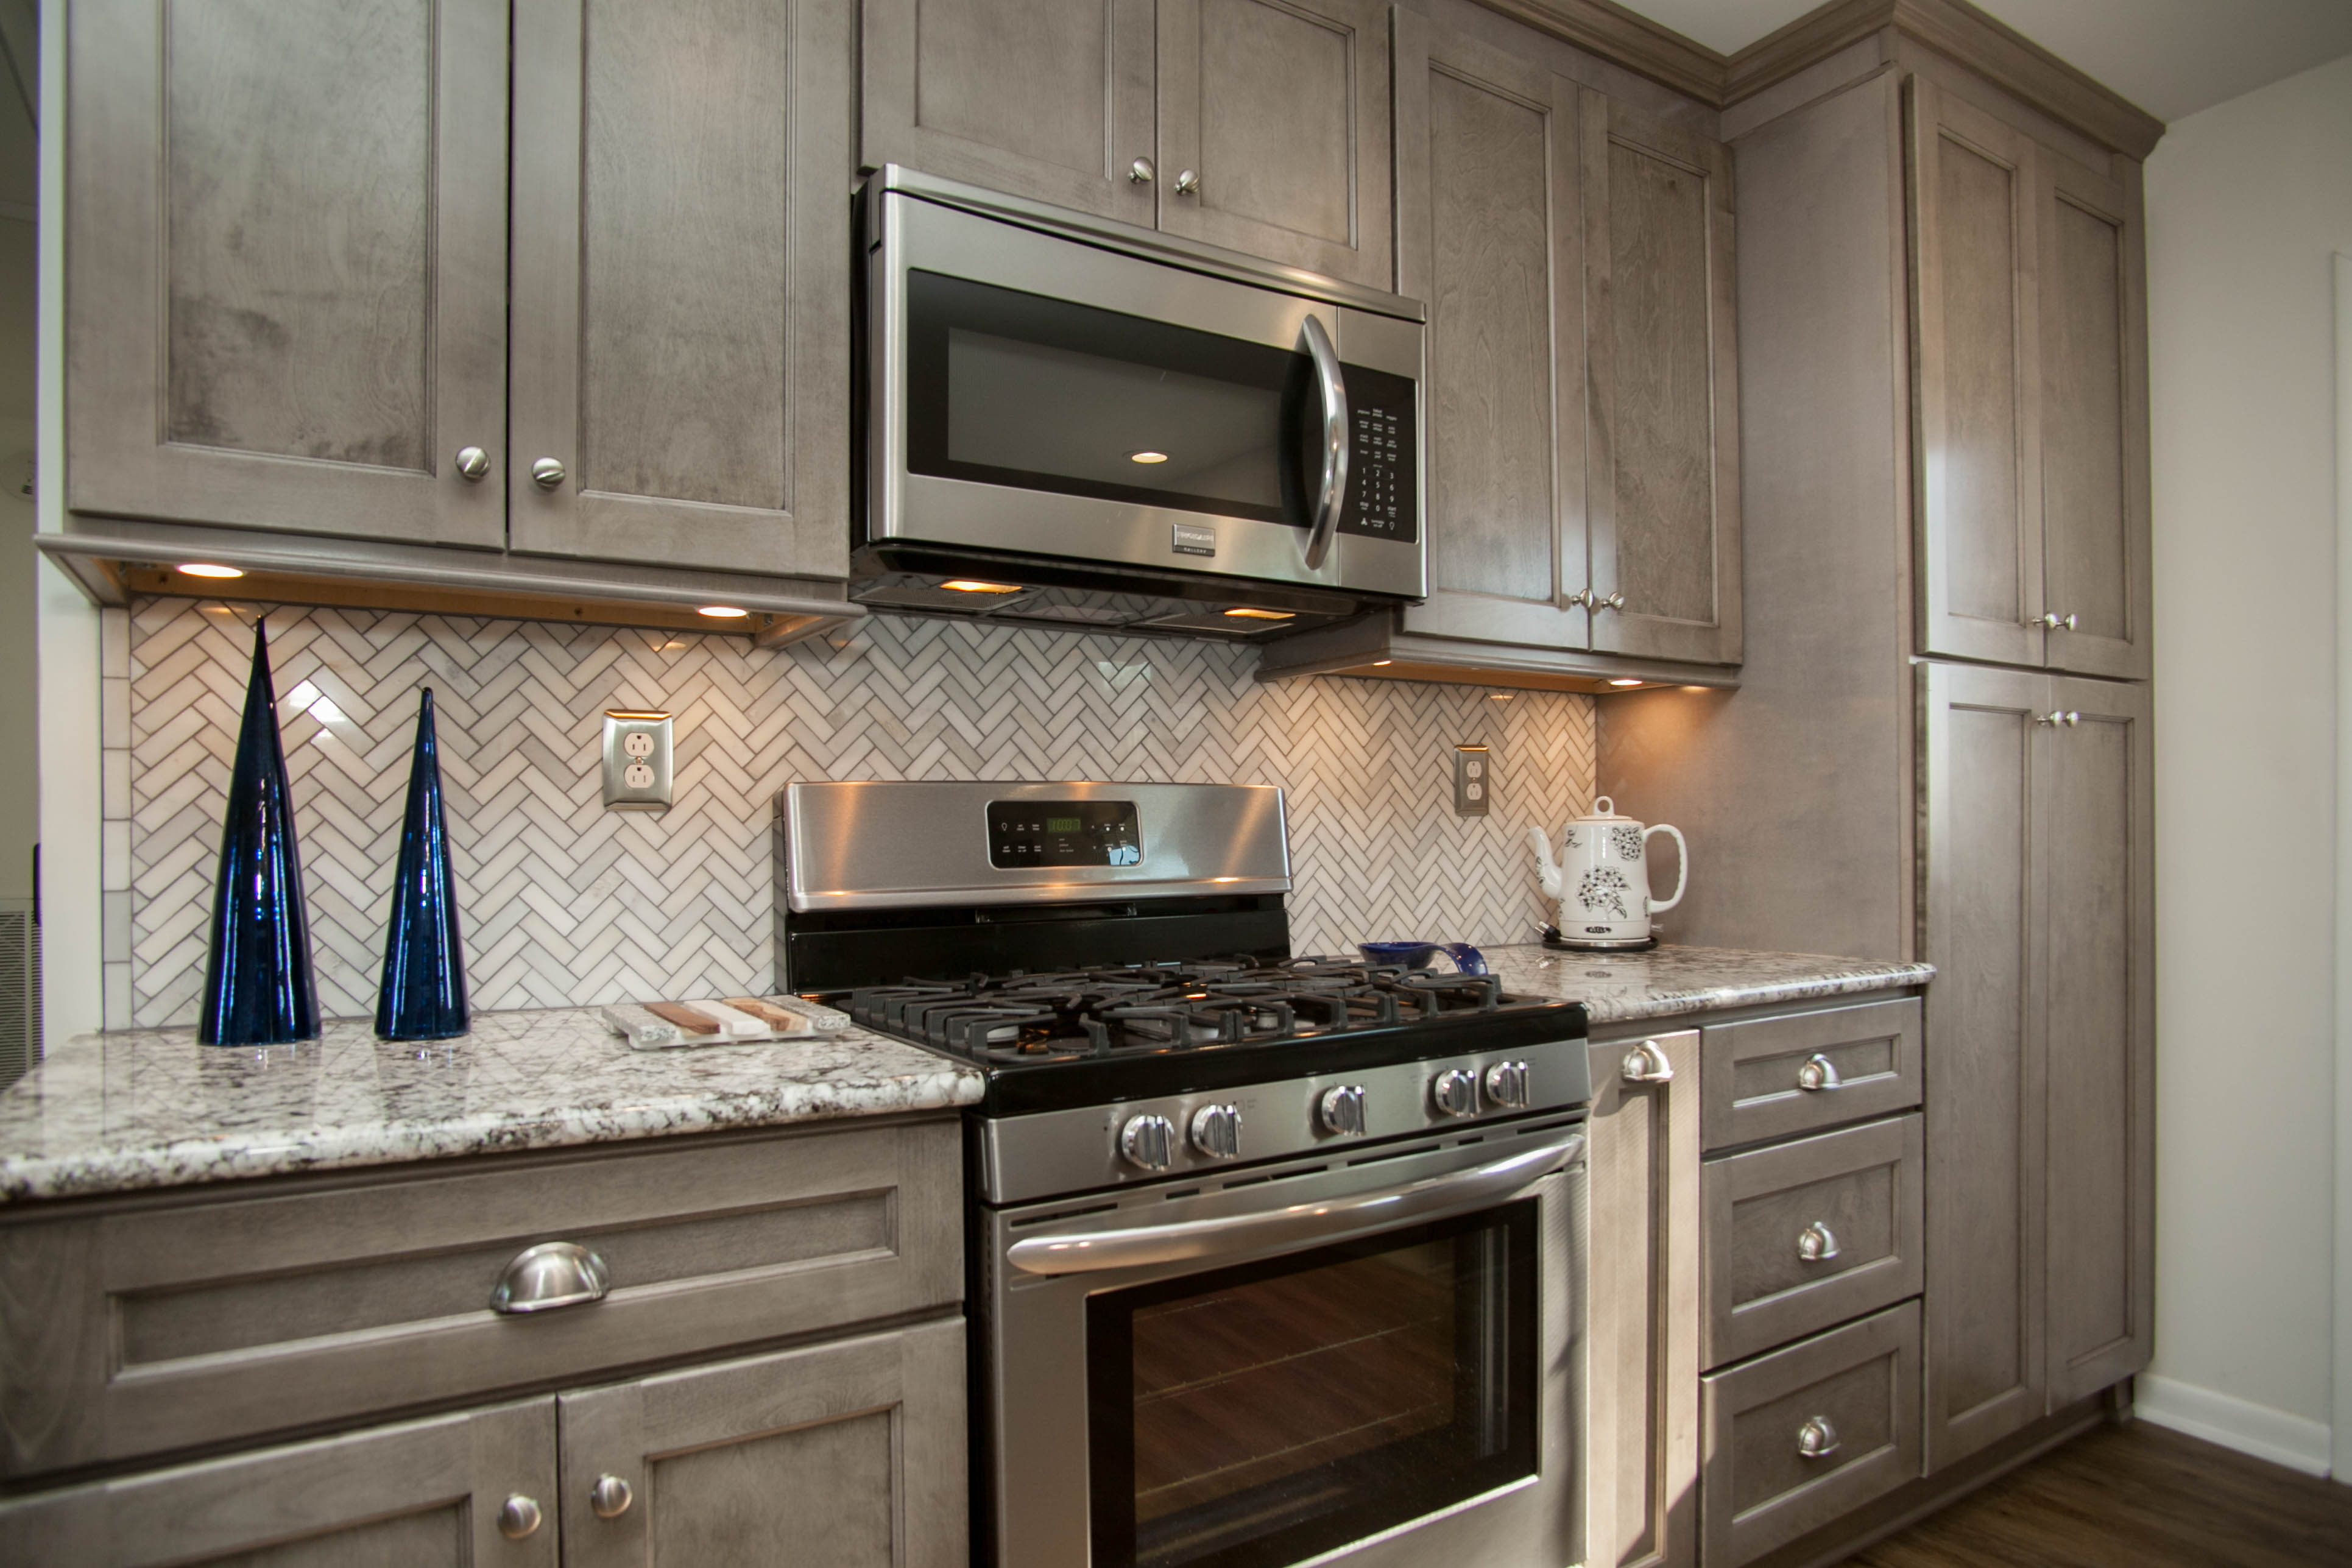 Best Kitchen Gallery: Norris Gray Heritage Cabi S of Heritage Distressed Mocha Kitchen Cabinets on rachelxblog.com